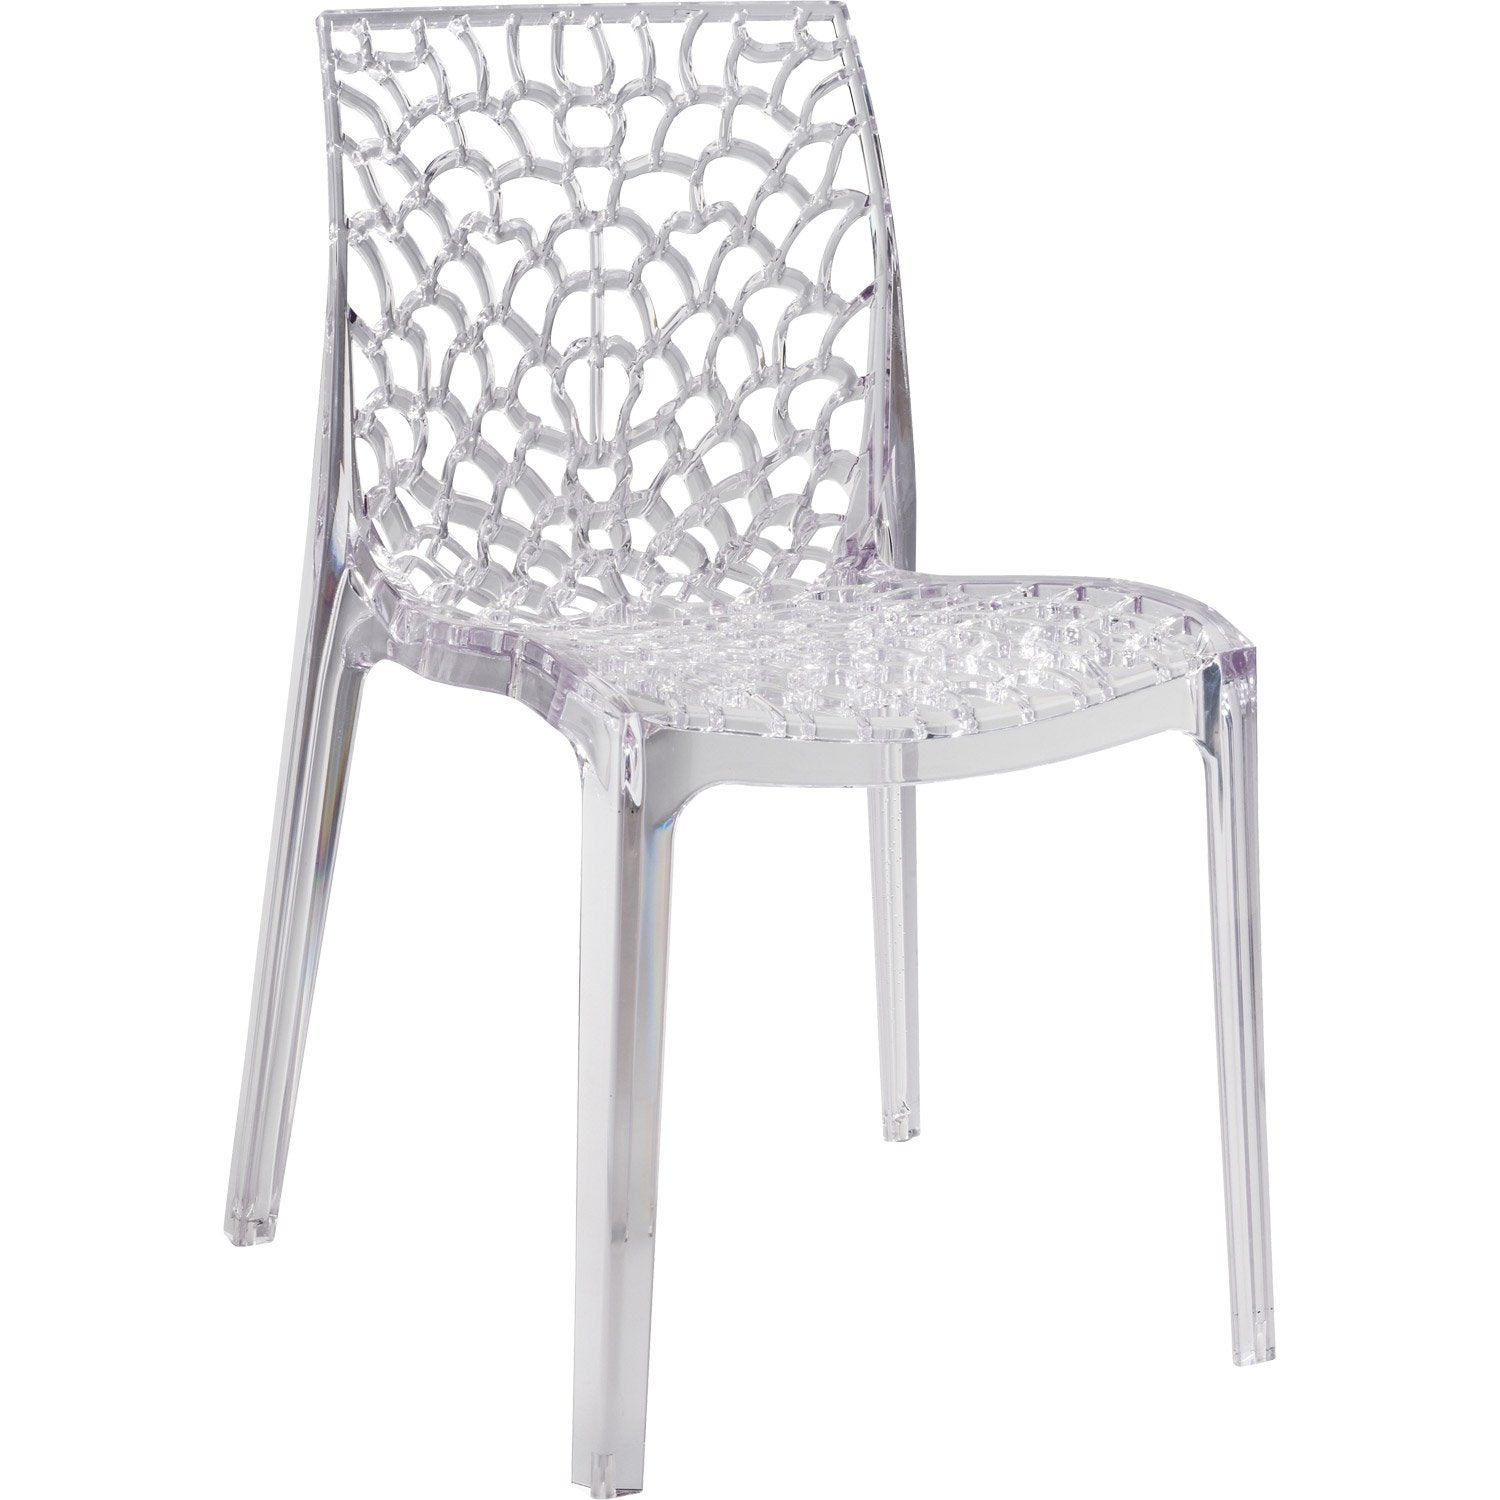 Chaise de jardin en polycarbonate grafik lux transparent for Chaise de salon grise